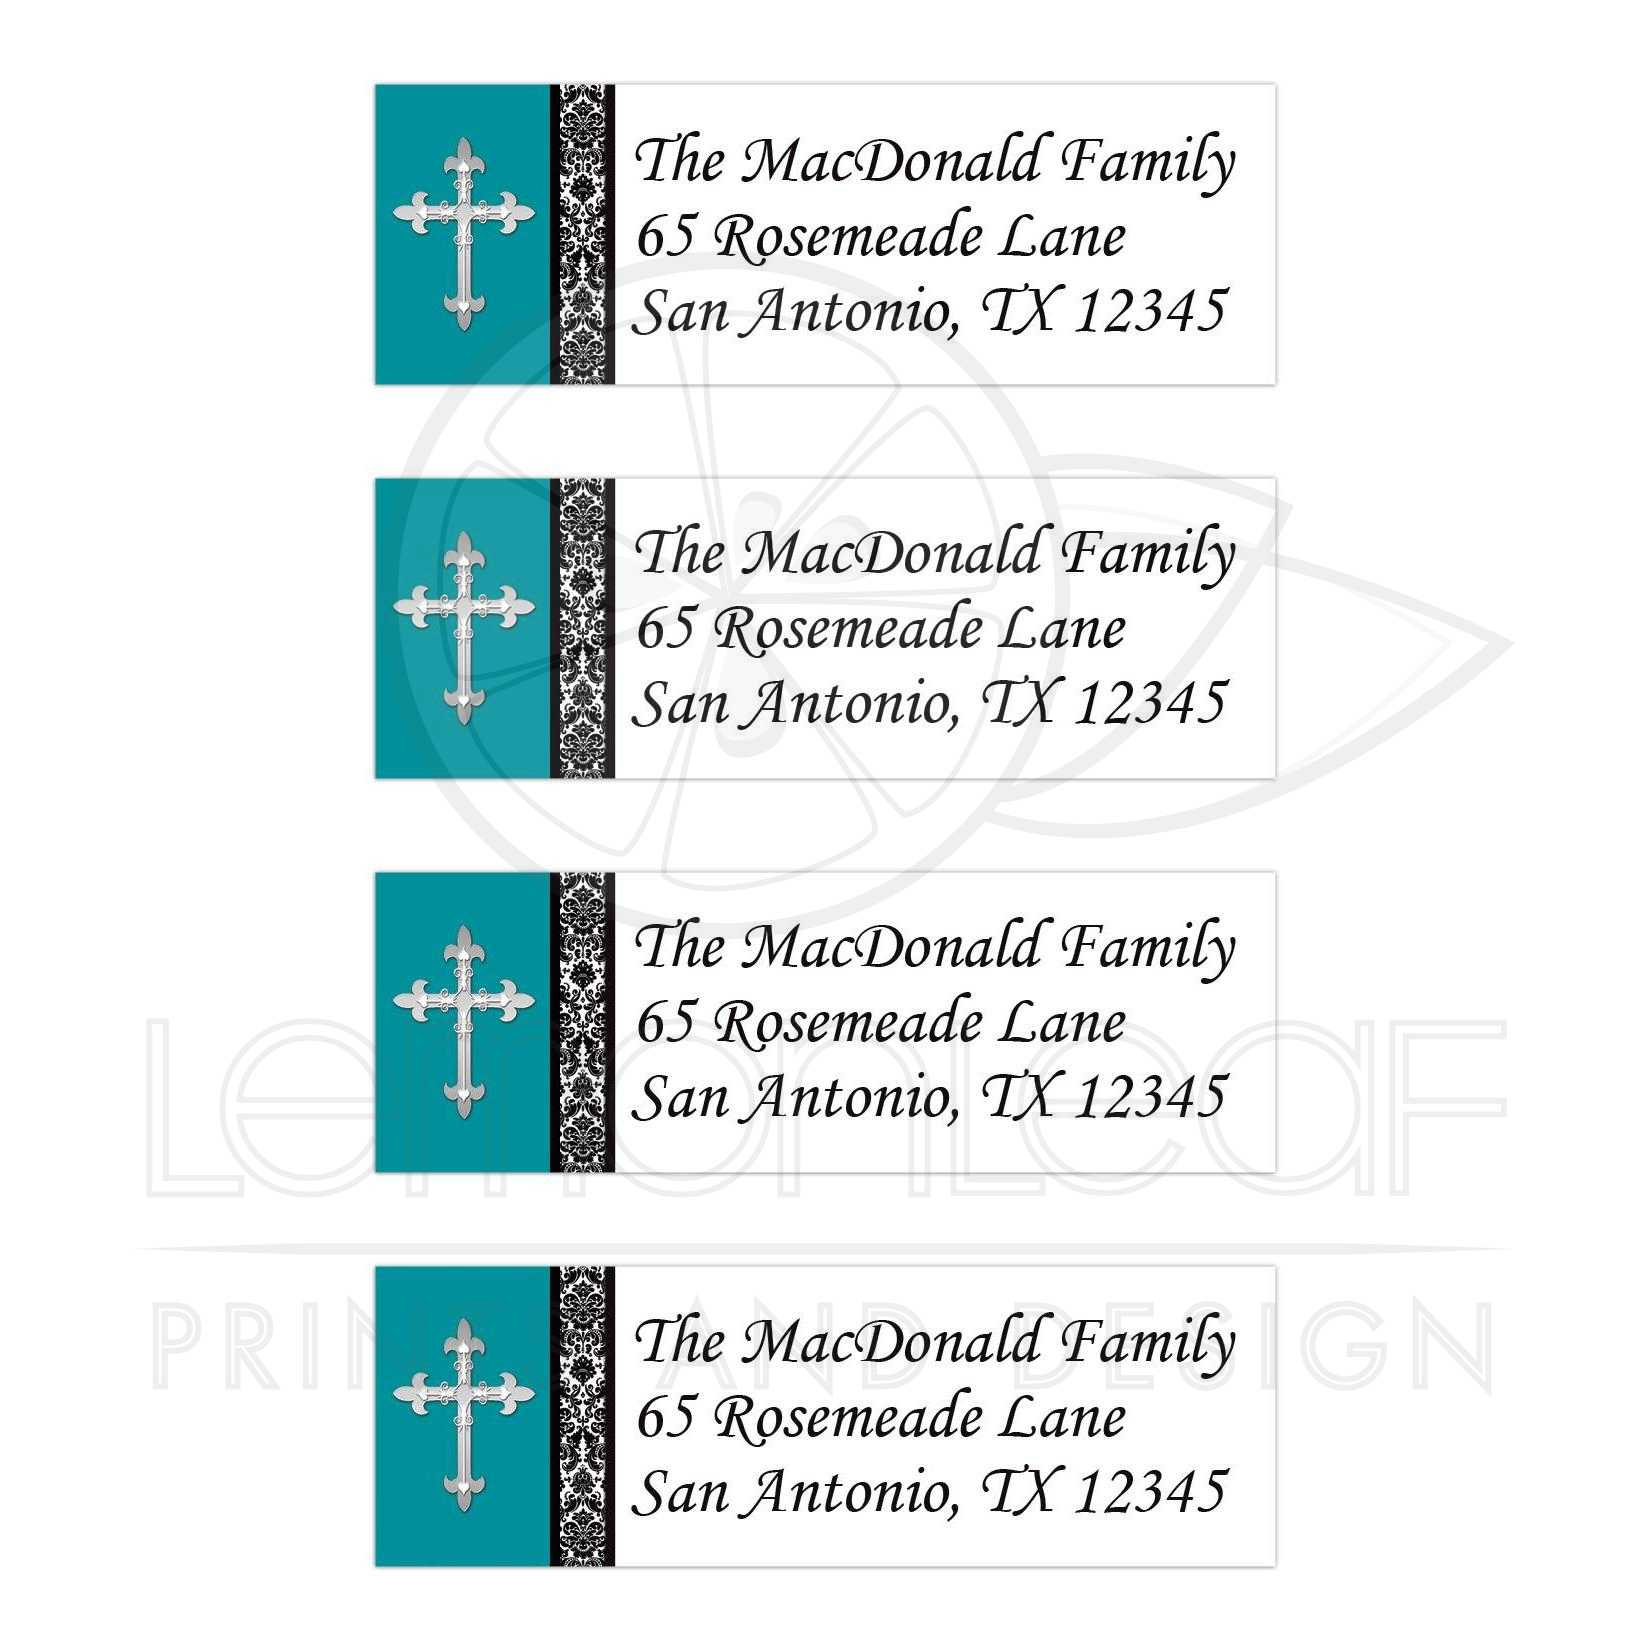 personalized address labels teal black white ornate silver cross